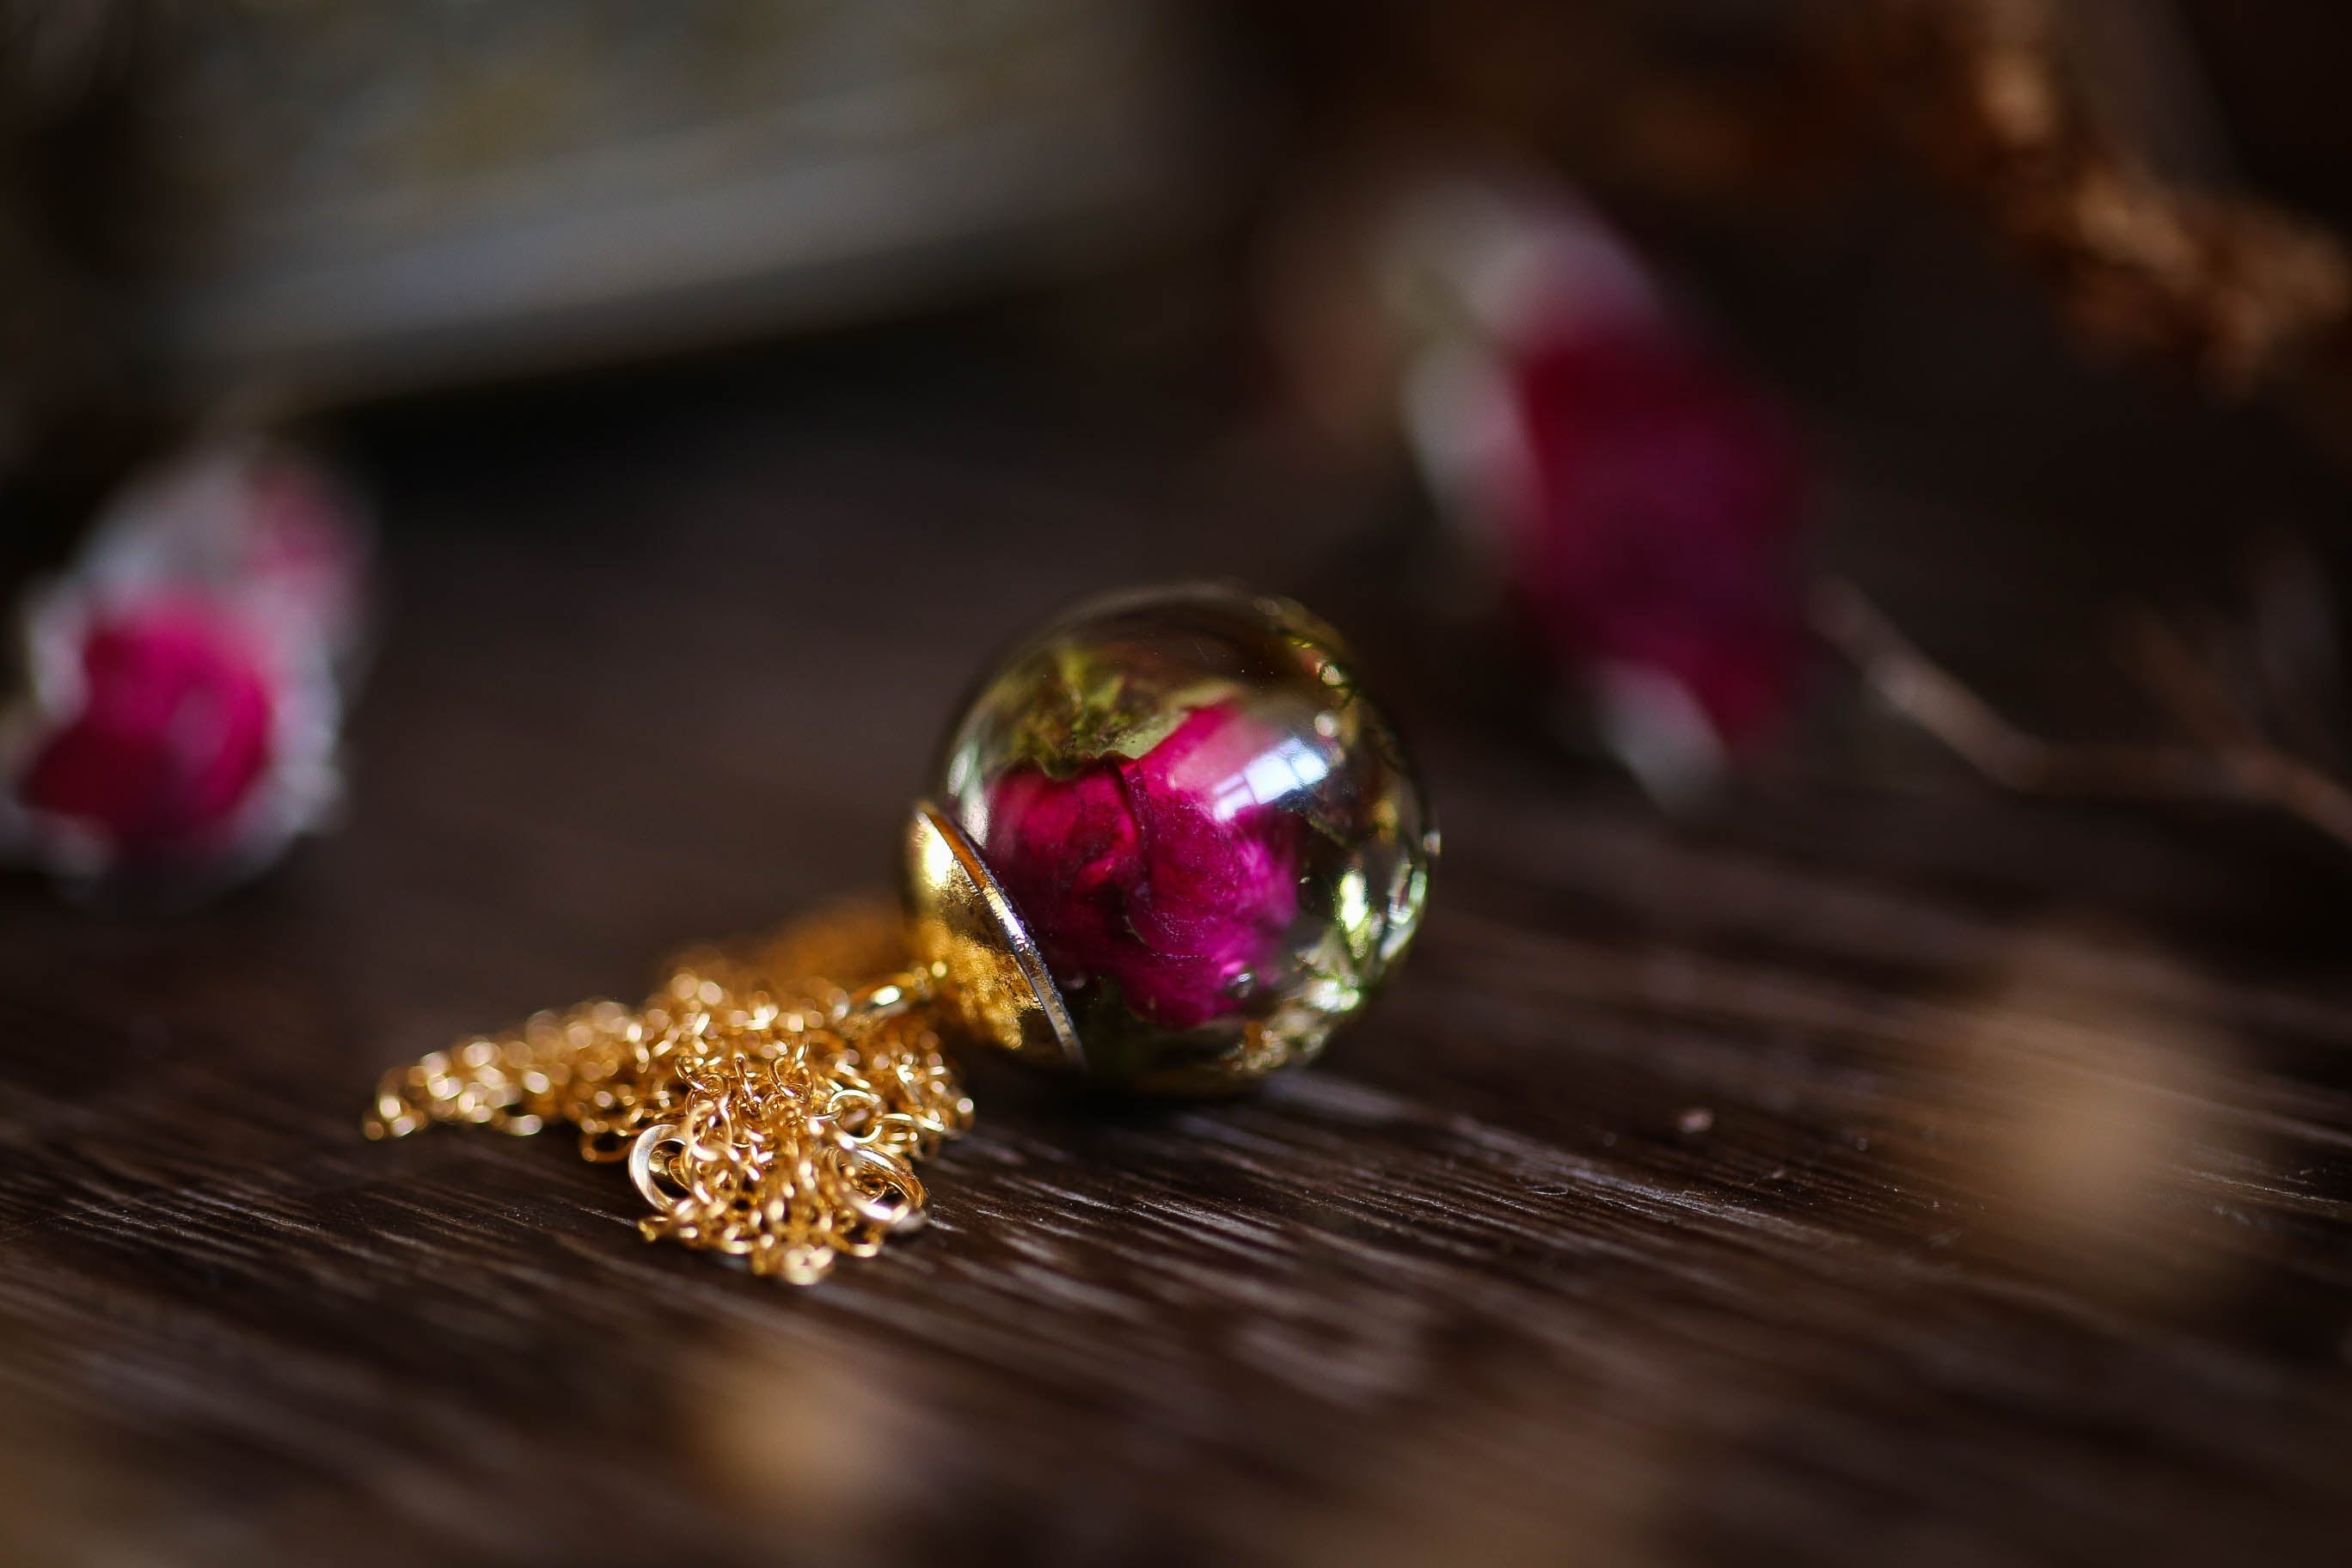 Rose, moss and gold leaf pendant on 14k gold chain